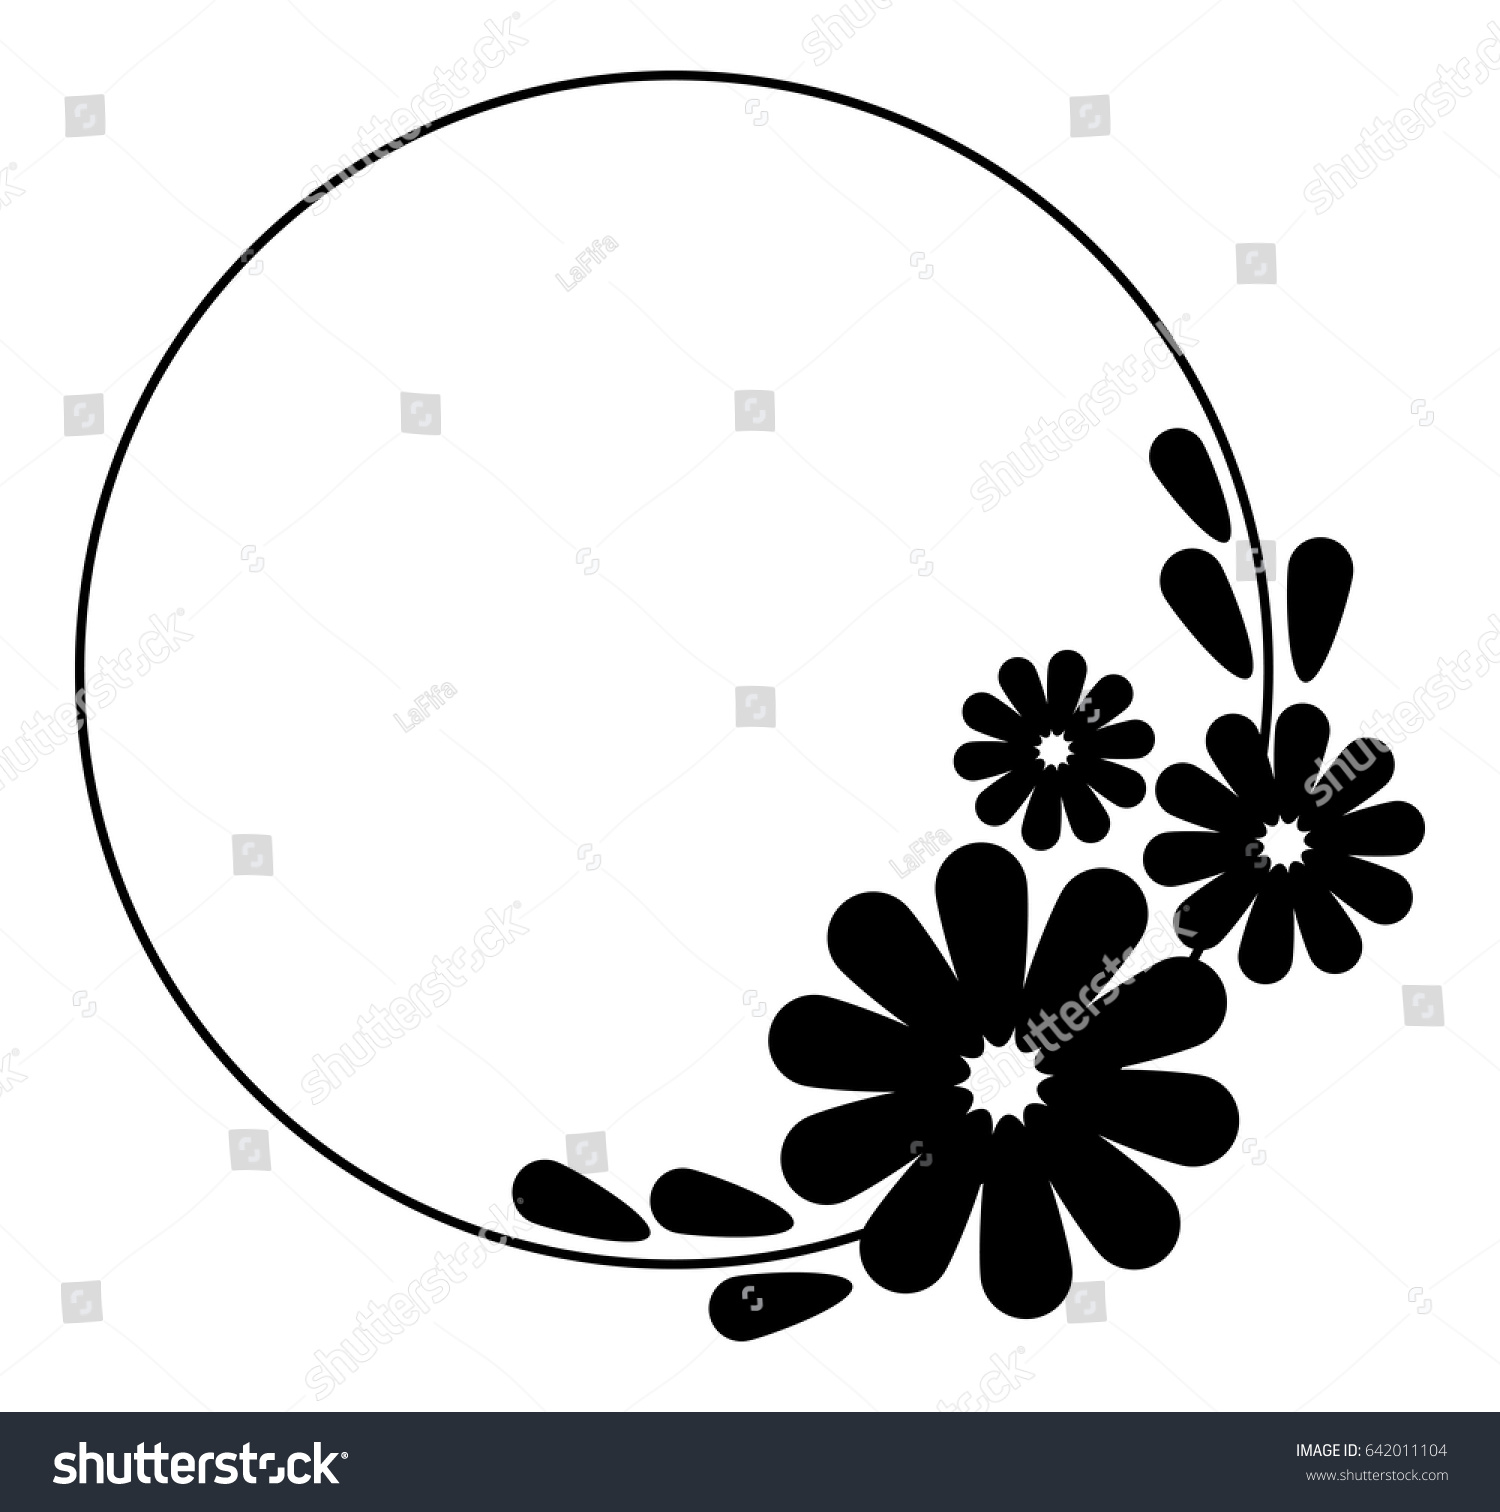 Round frame with decorative branch vector illustration stock - Black And White Silhouette Round Frame With Decorative Flowers Vector Clip Art